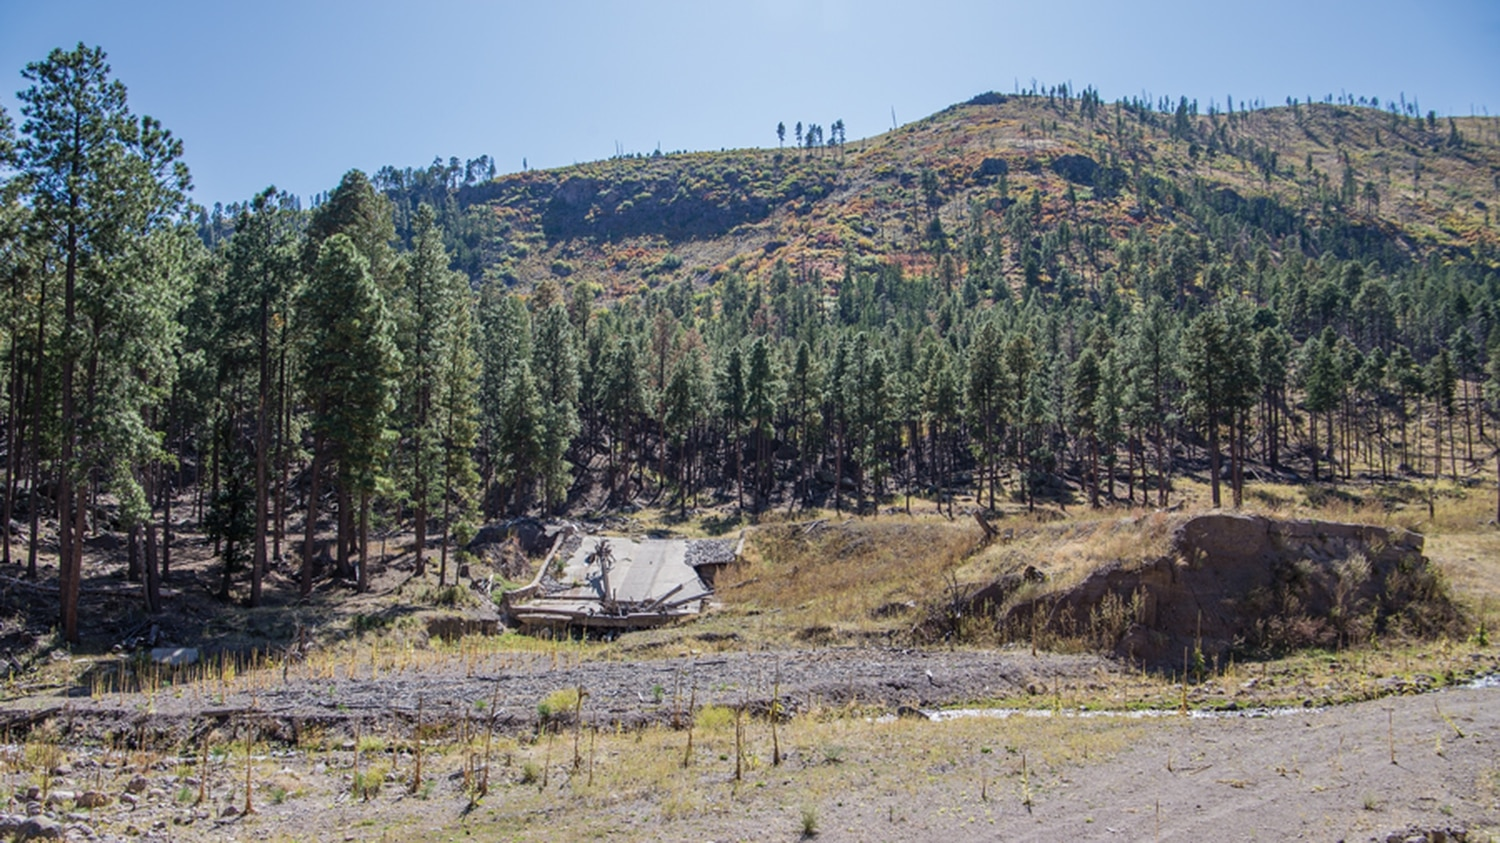 A piece of intact forest overlooks the ruins of one of the four Santa Clara dams breached by post-fire floods.